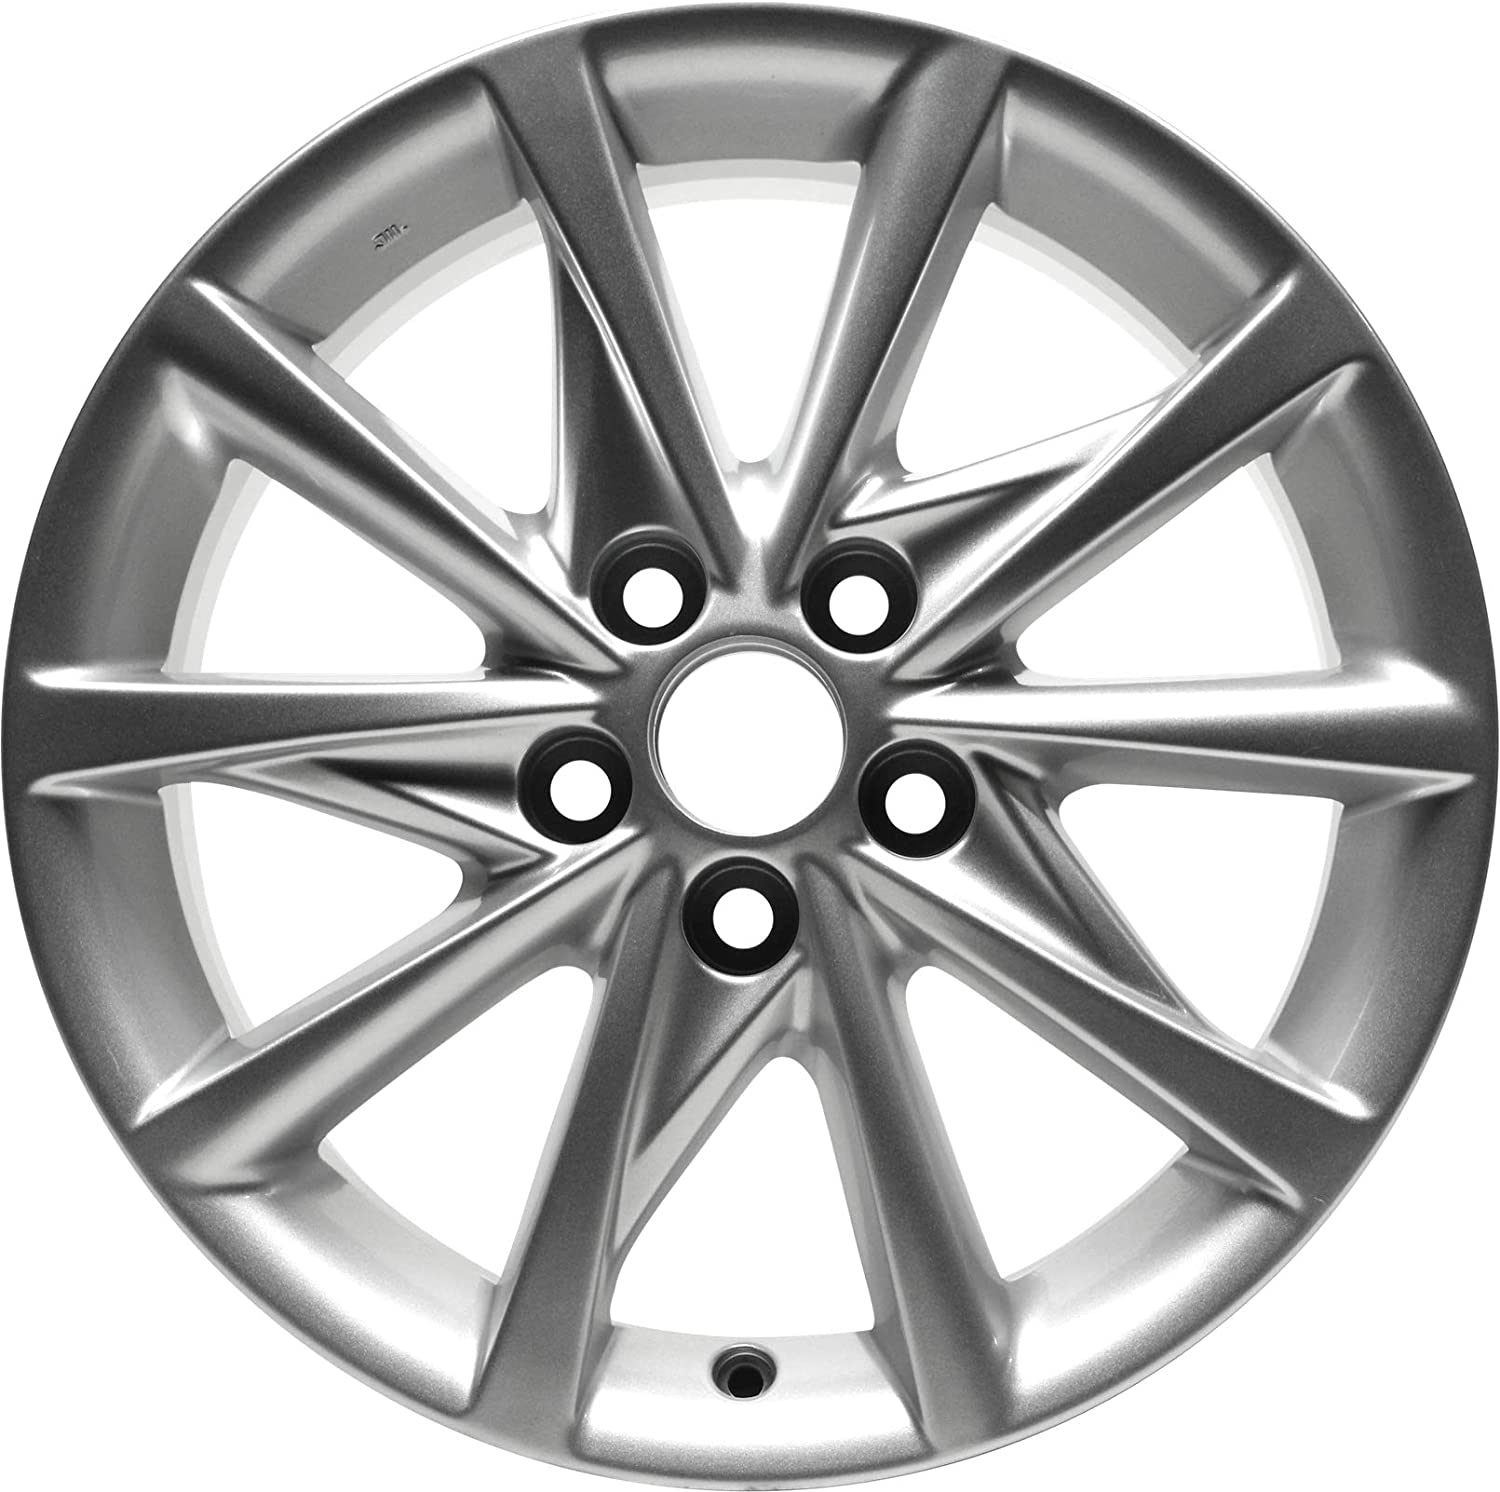 Partsynergy Replacement For New Aluminum Alloy Wheel Rim 17 Inch Fits 2013-2016 Ford Escape 5-108mm 5 Spokes